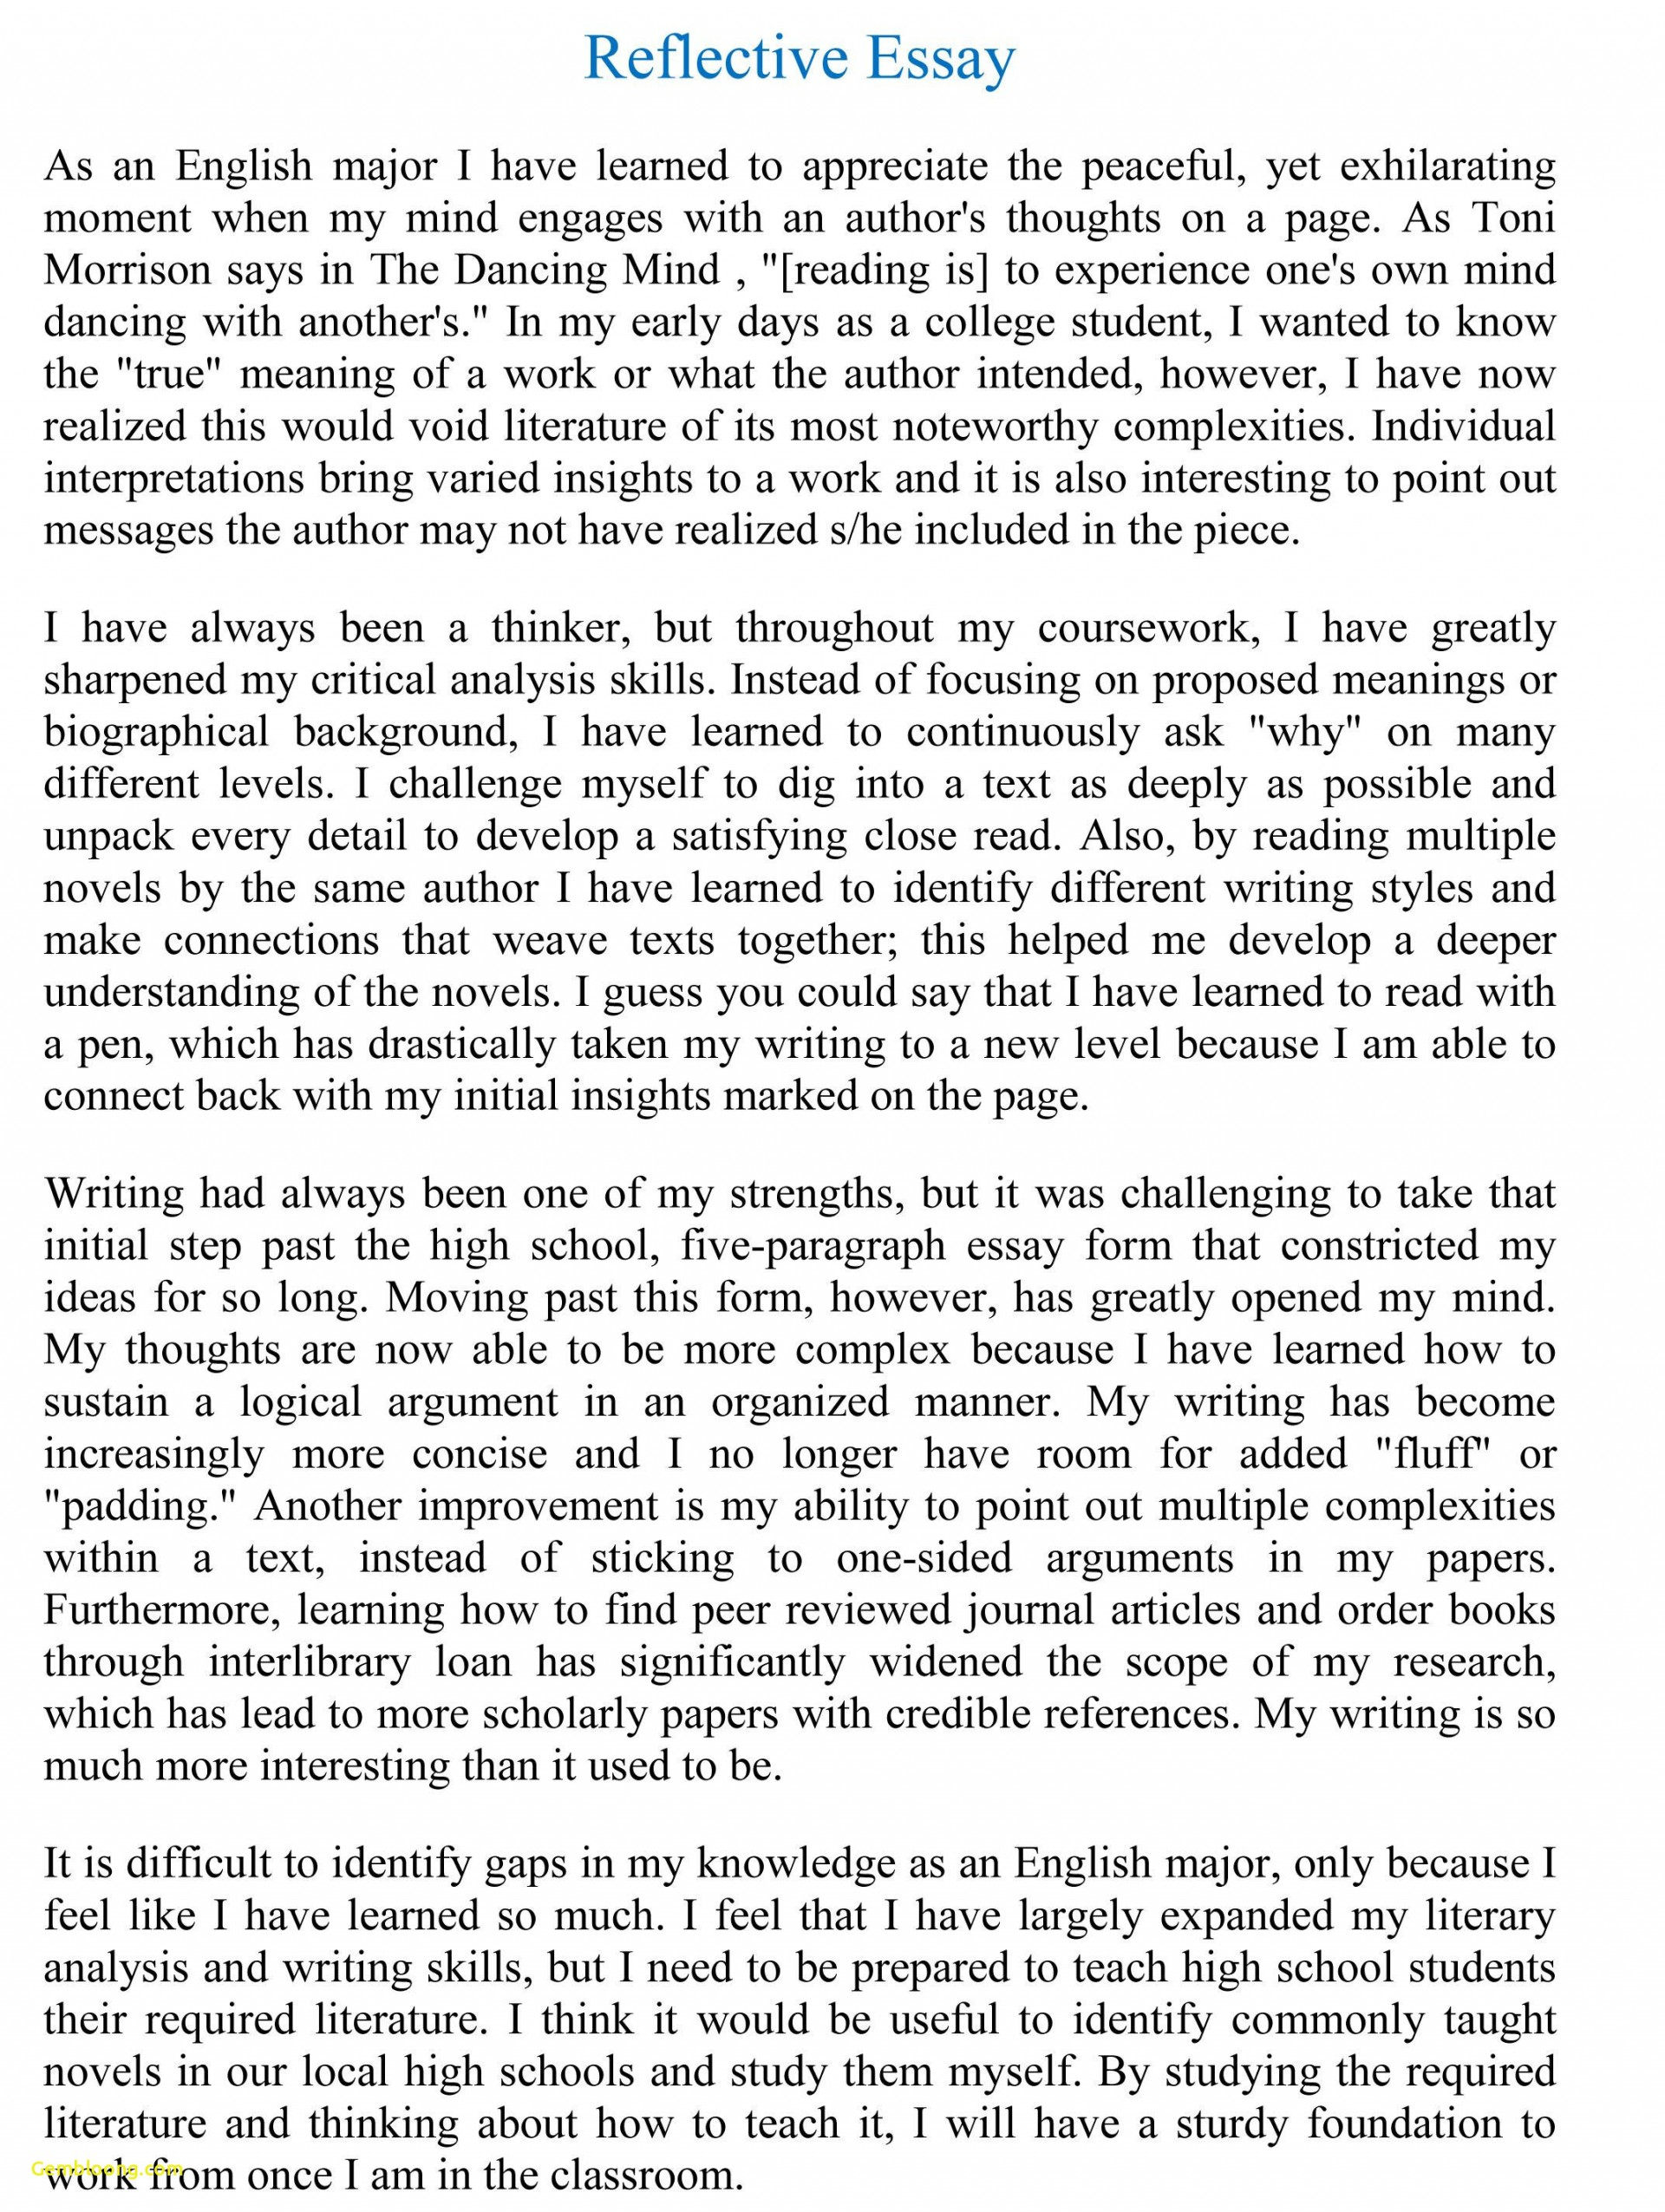 006 Essay Example Reflection Format Reflective Unique Writing Persuasive Wondrous Apa Form Guidelines 1920